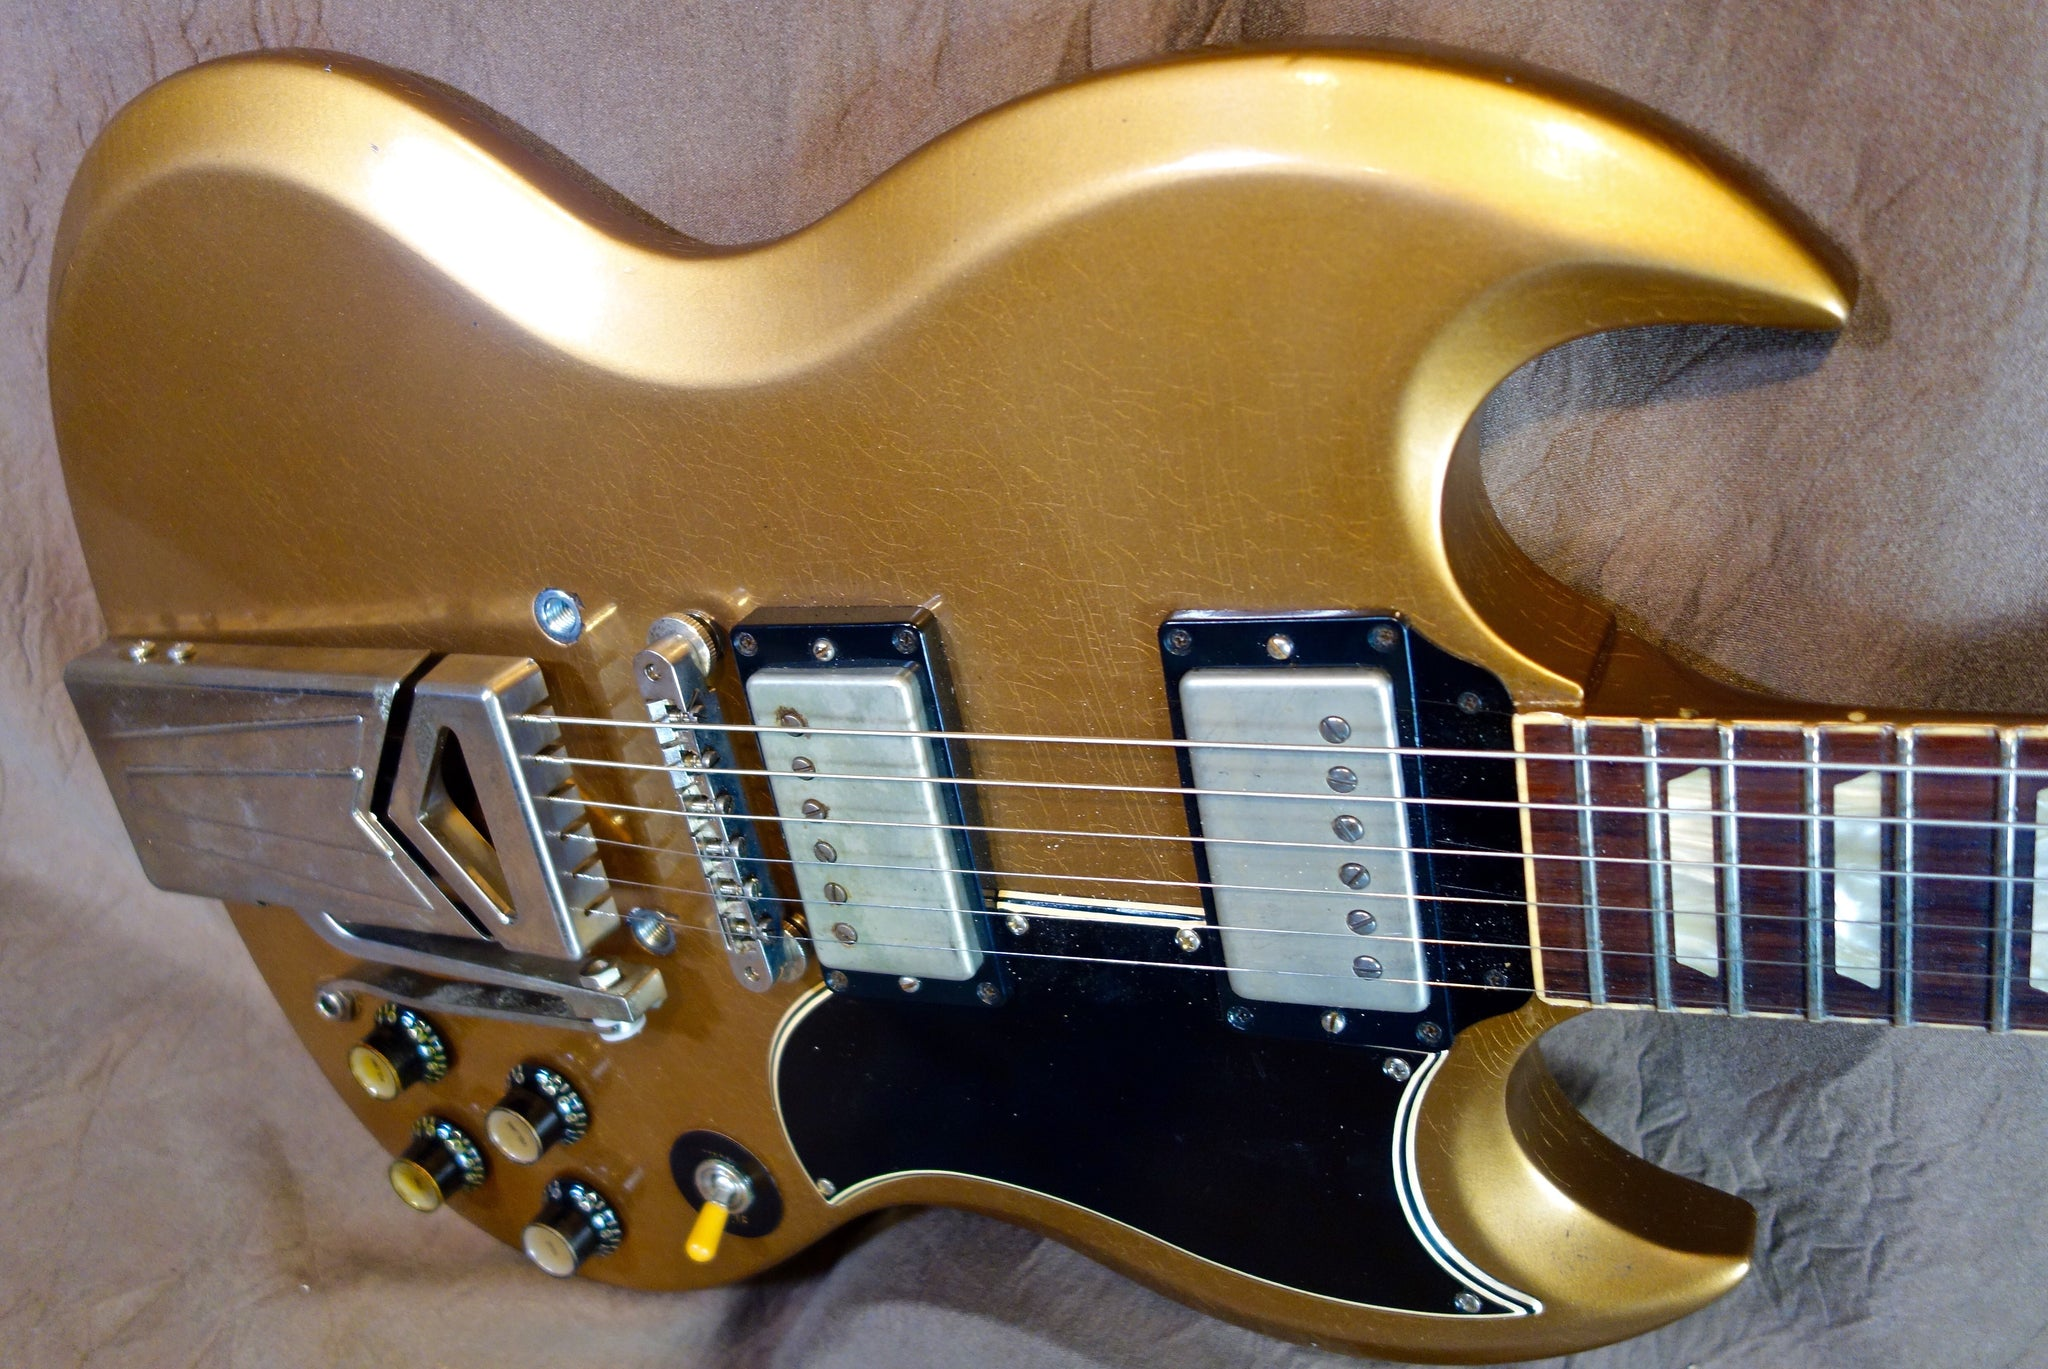 Gorgeous Metallic Gold Jimmy Wallace SG with side Tremelo